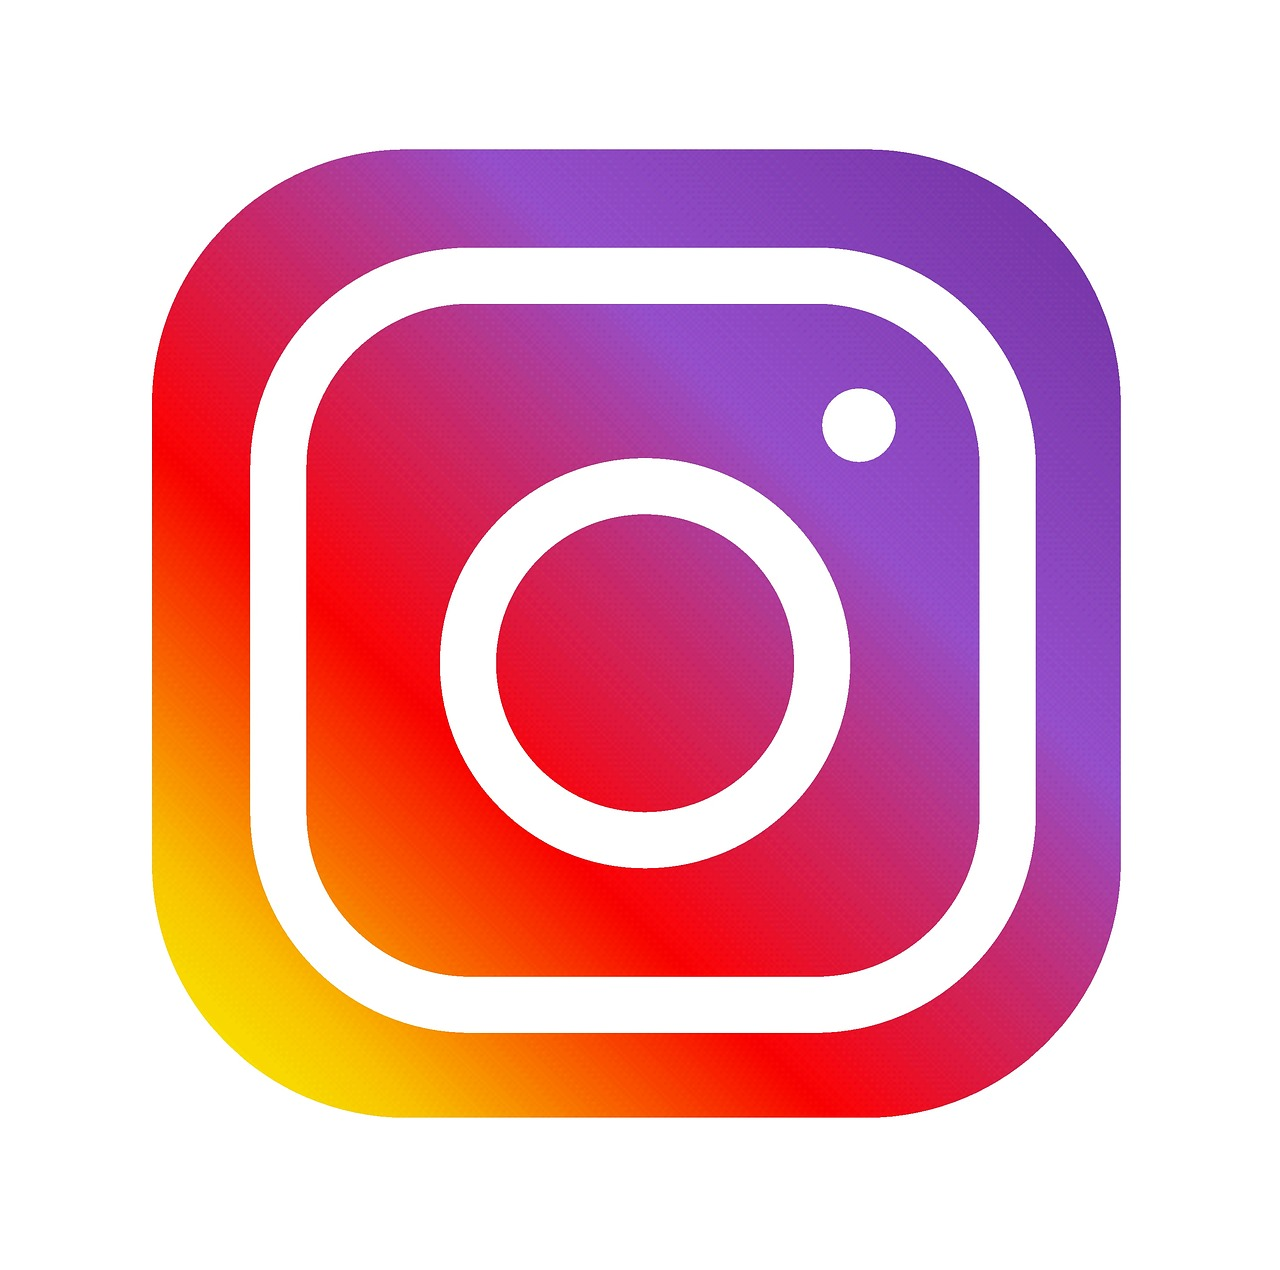 instagram symbol logo free photo